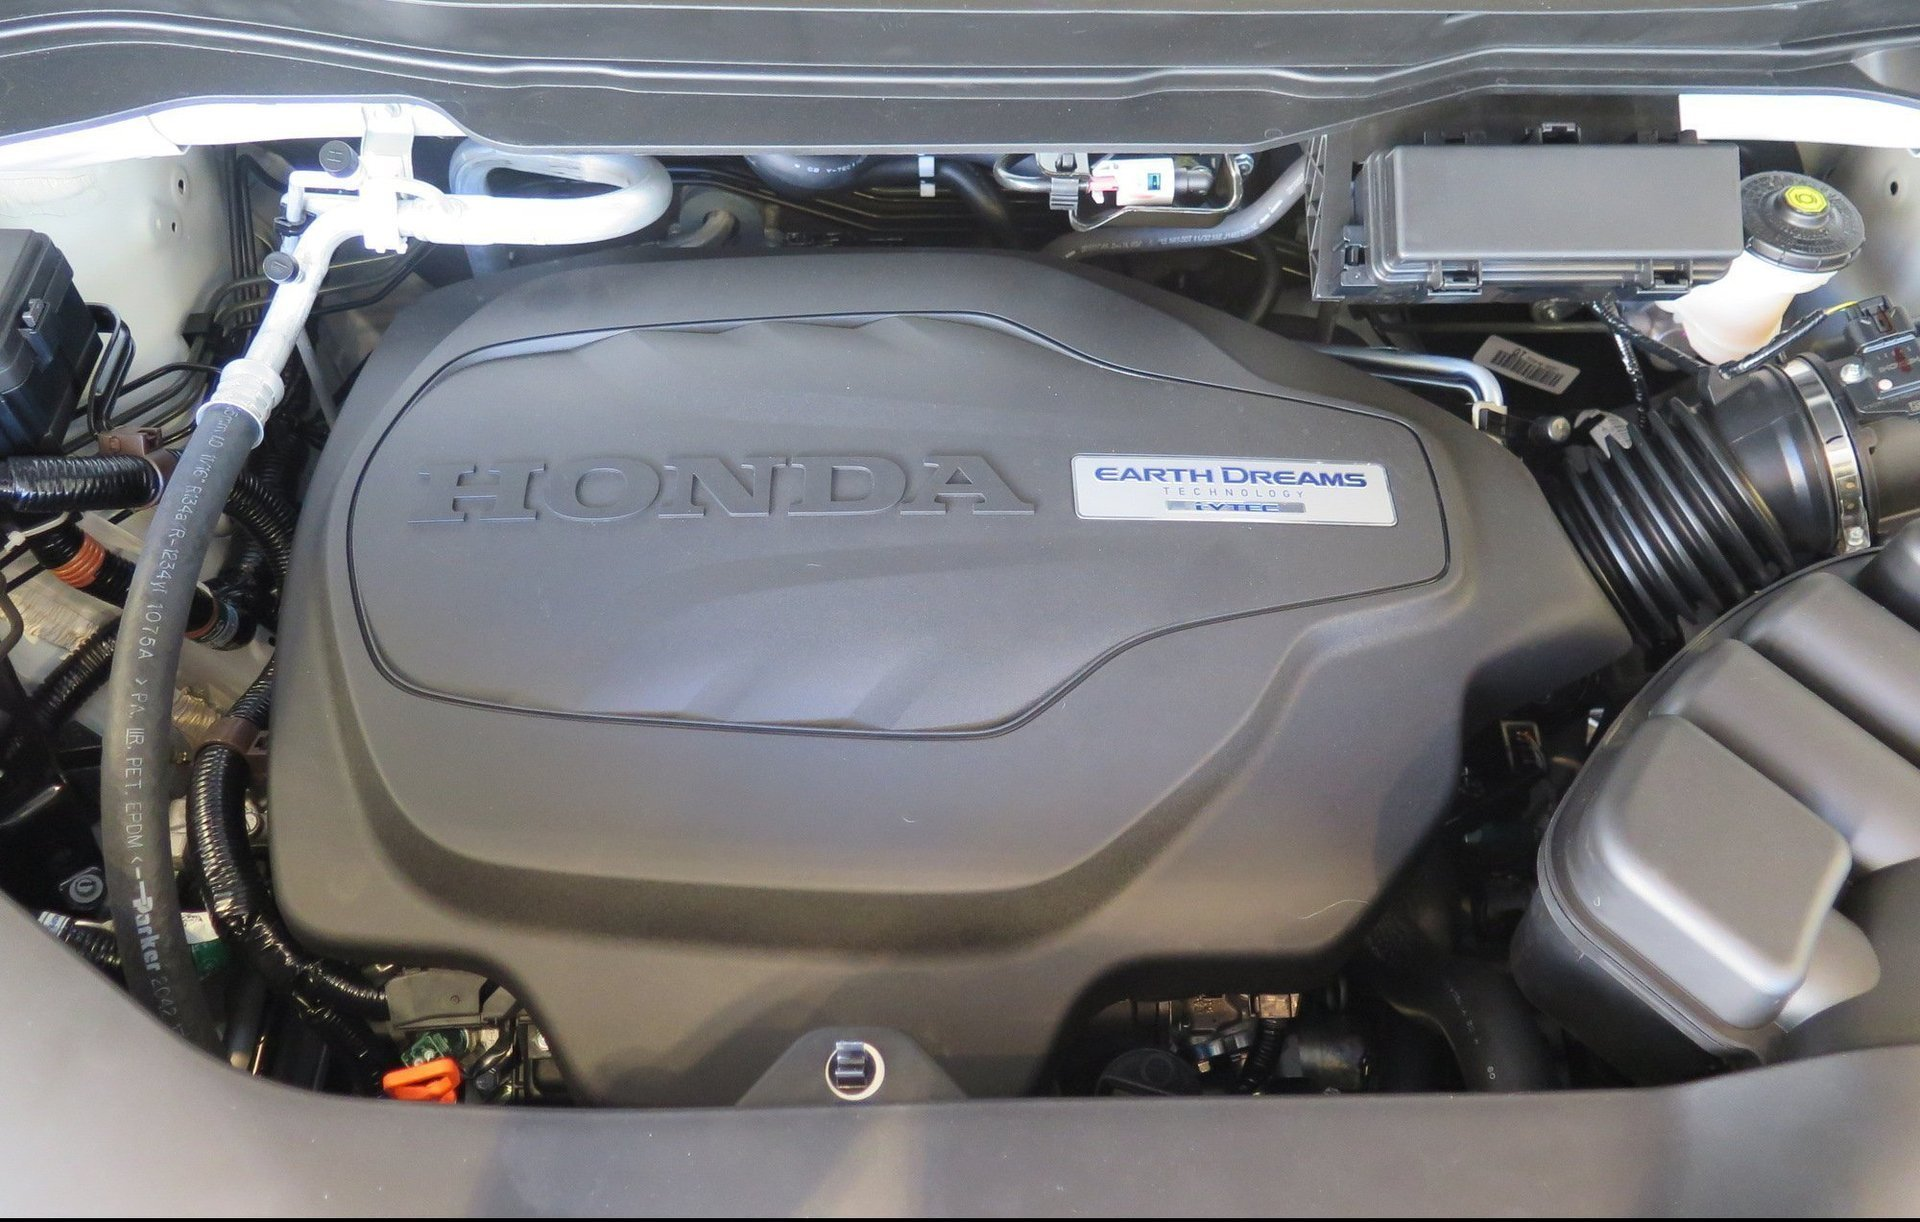 Moteur earthdreams technology i-vtec du nouveau Honda pilot 2016